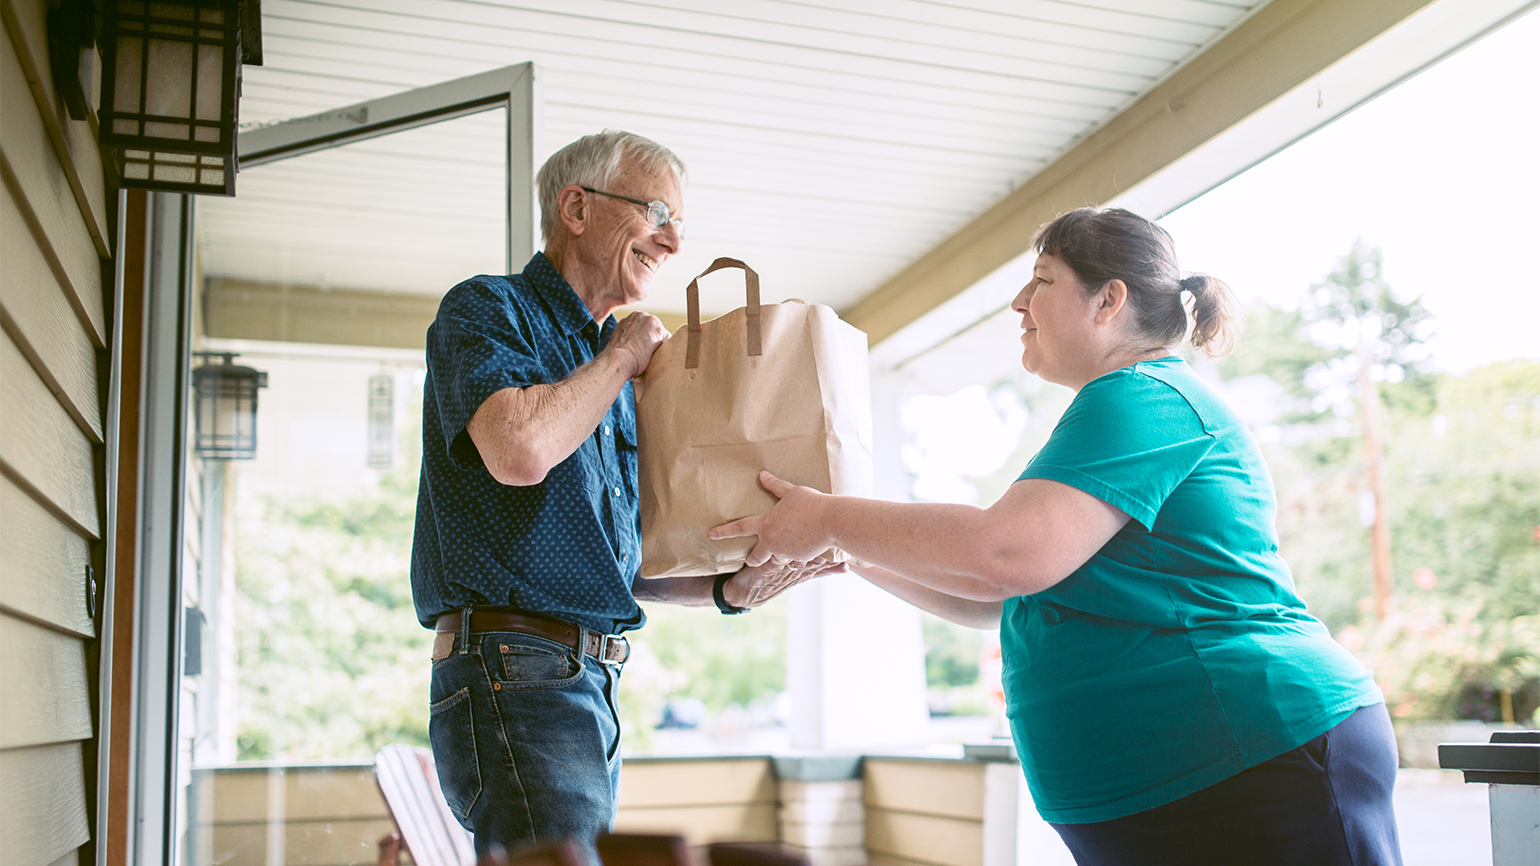 A woman brings groceries to a senior neighbor